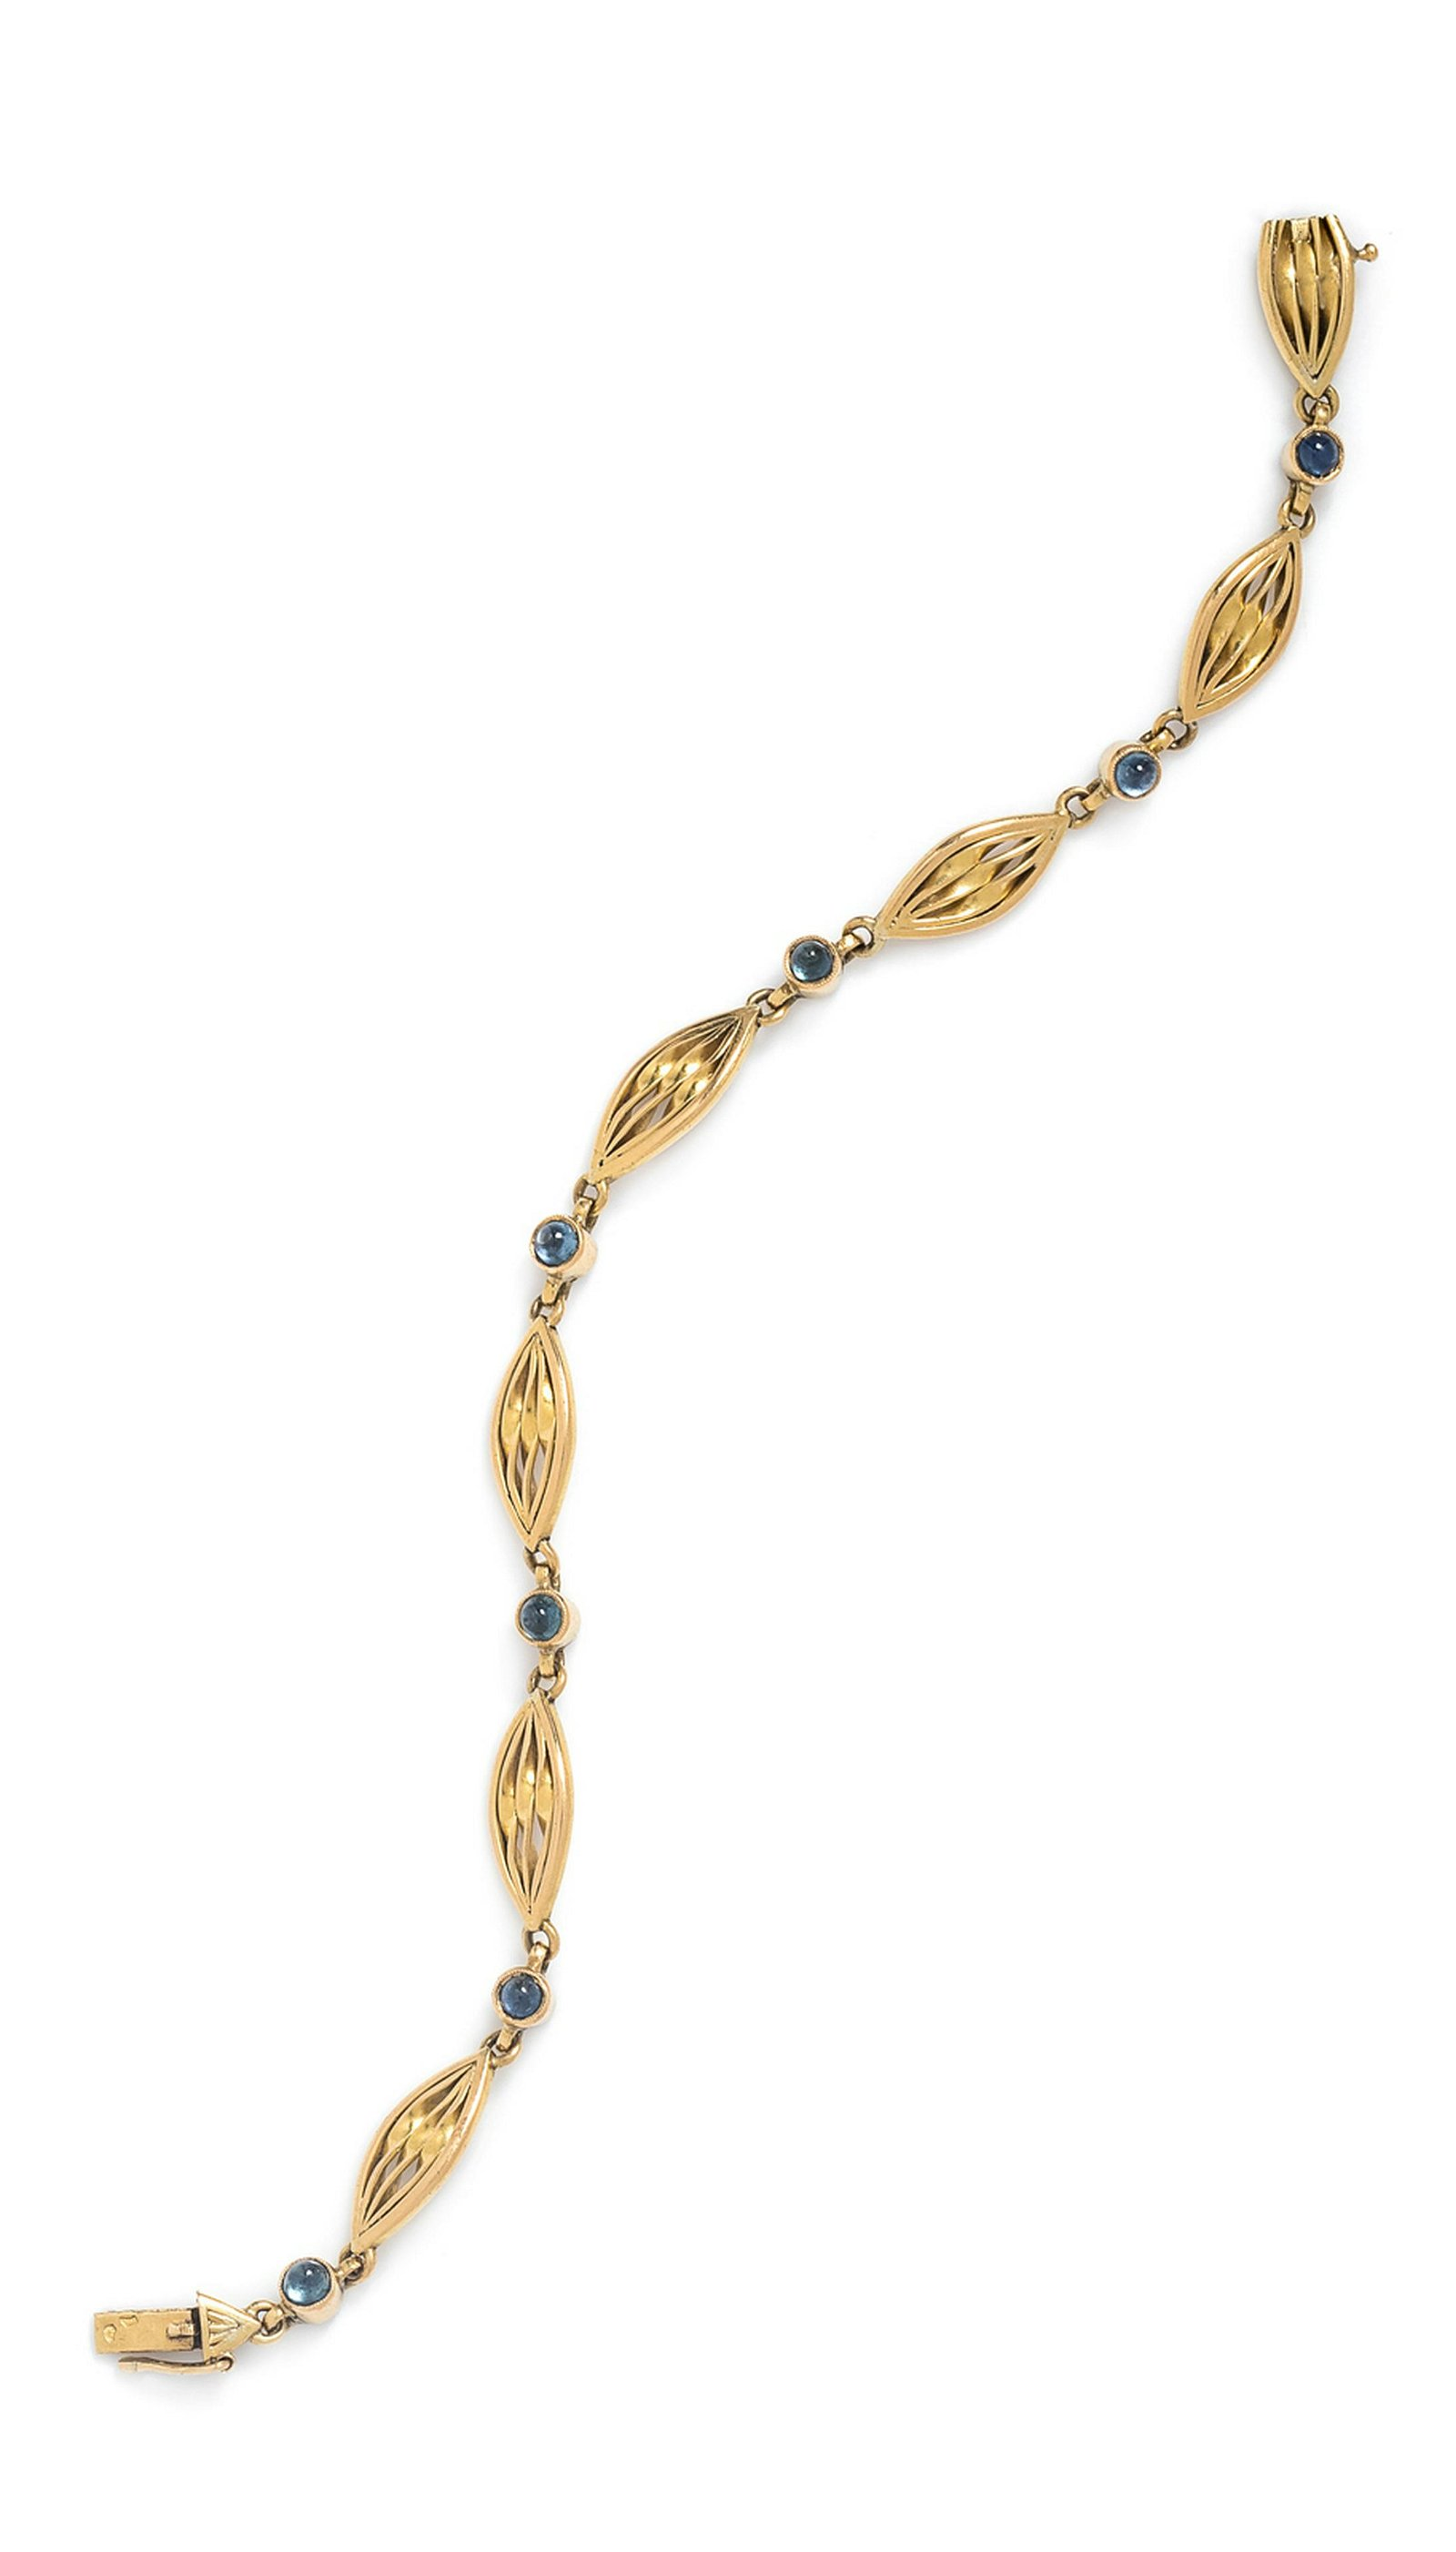 An 18 Karat Yellow Gold and Sapphire Bracelet, French,